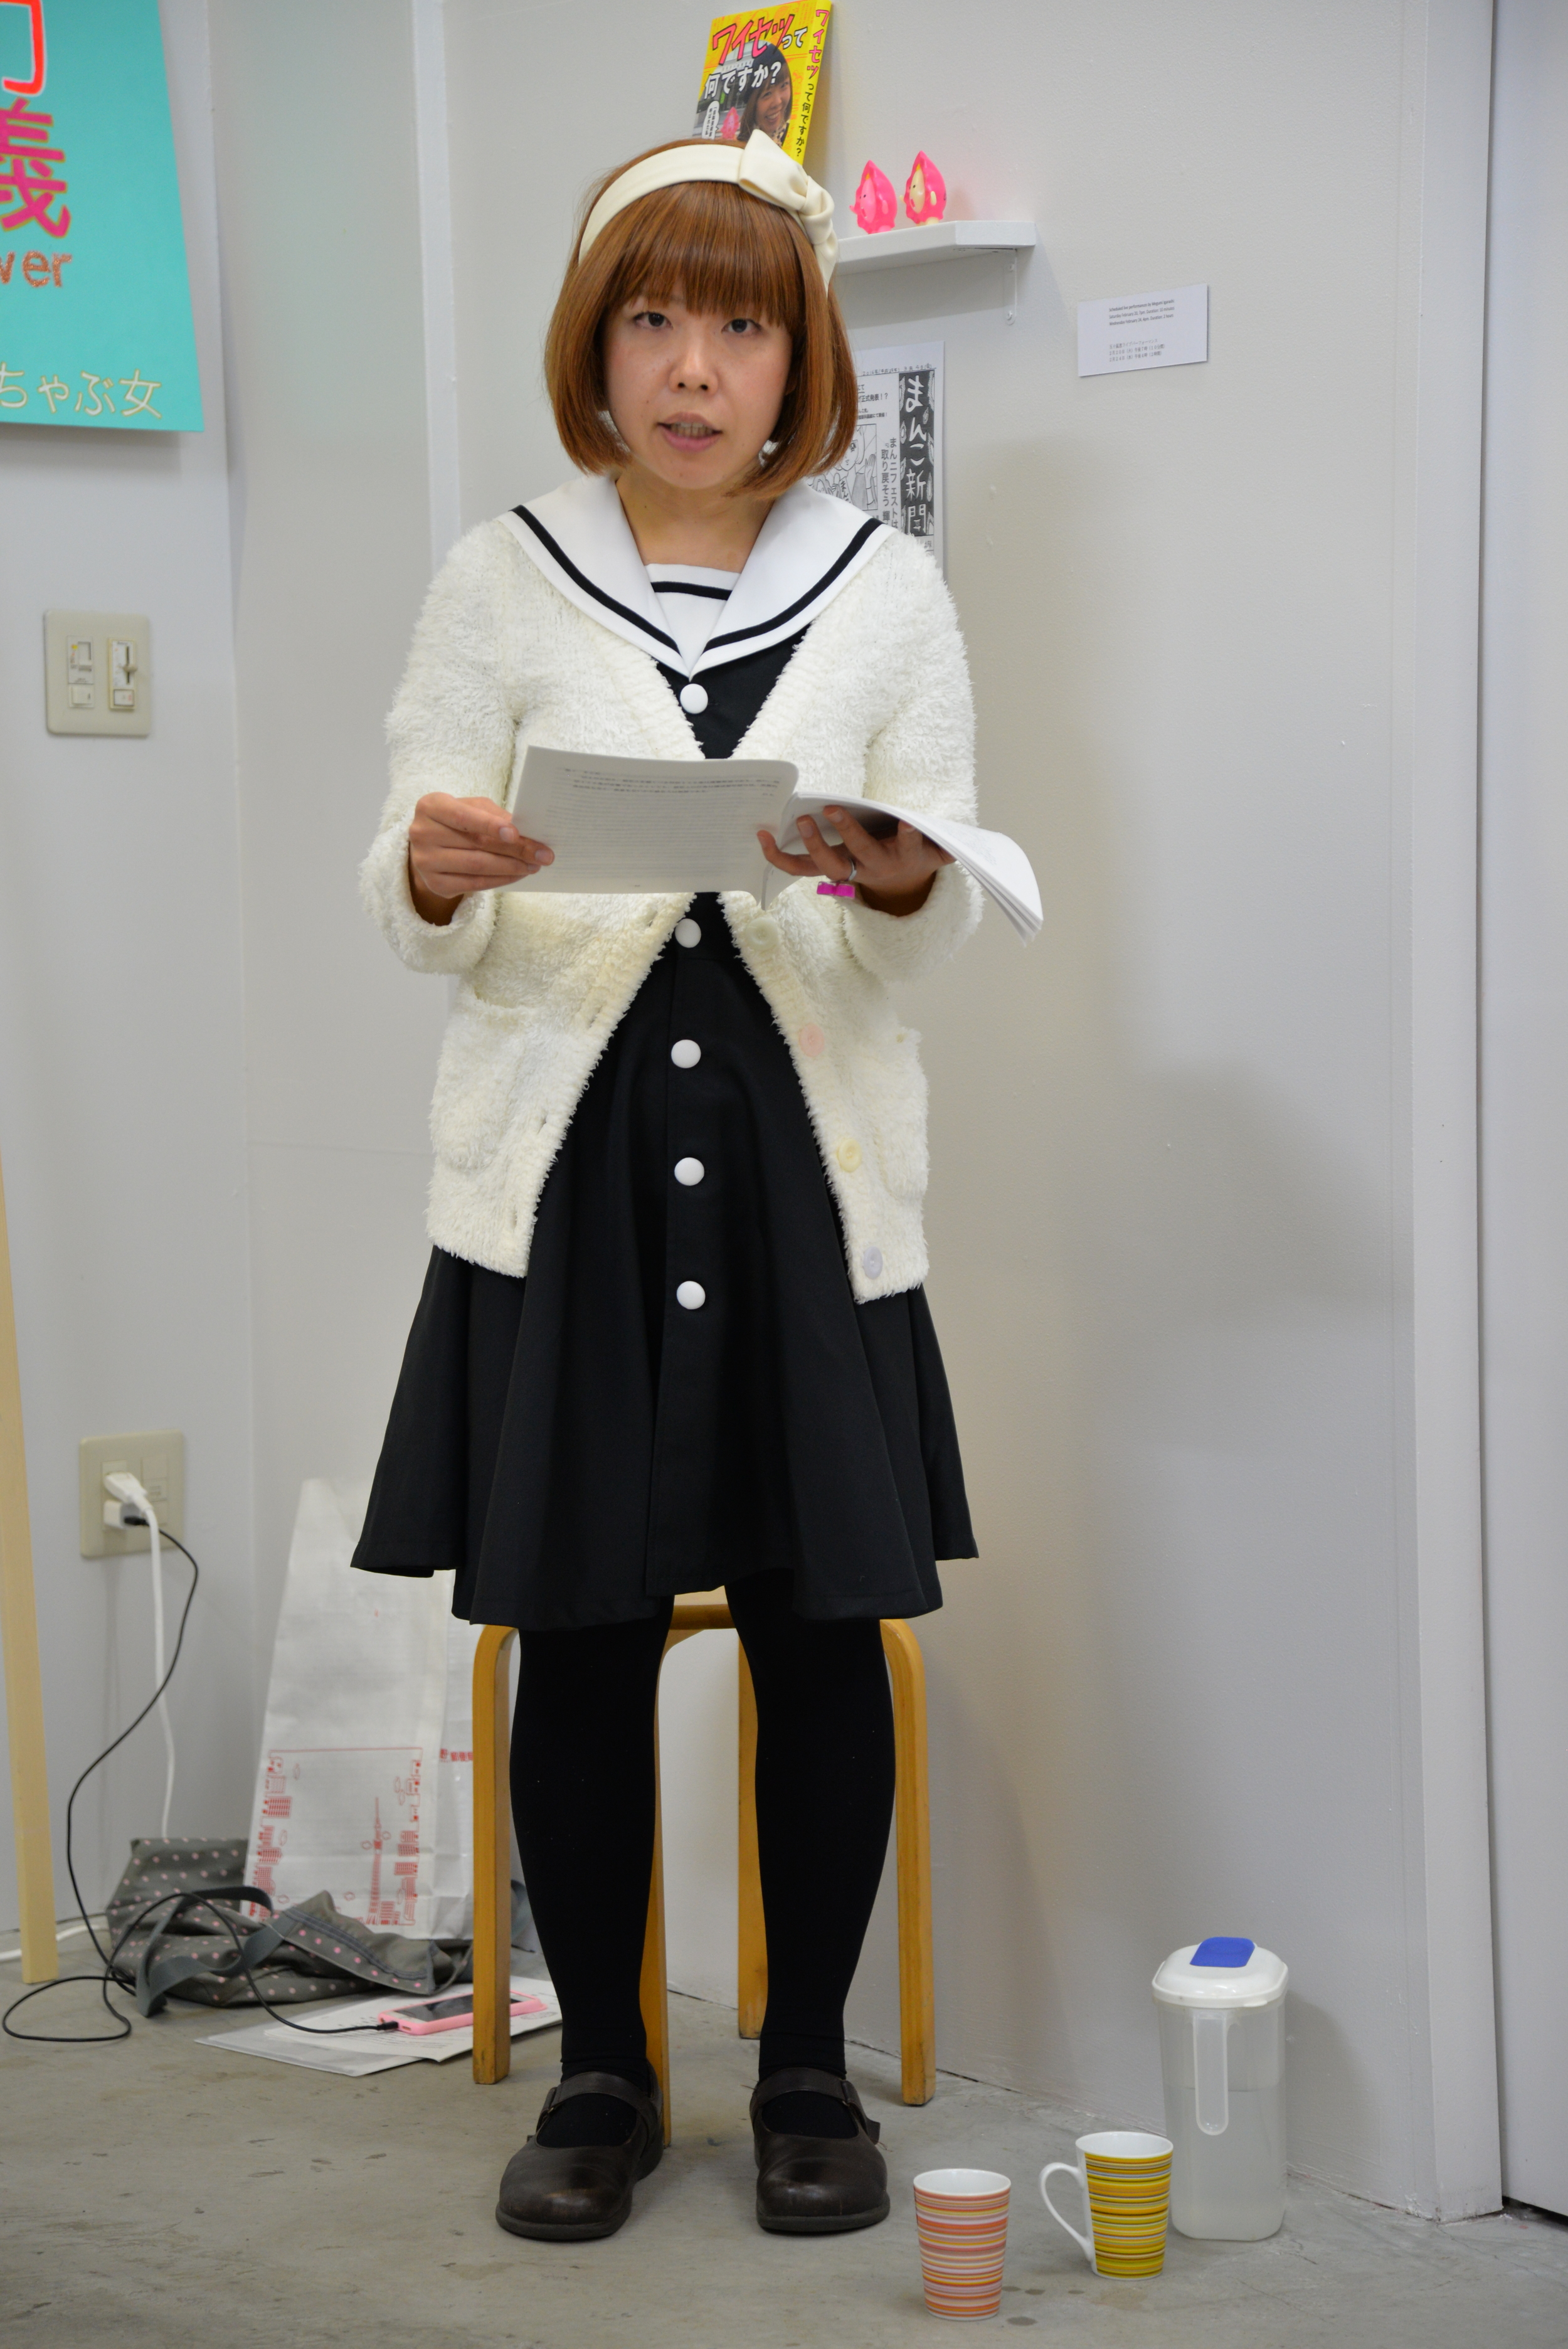 """Megumi Igarashi  Court Performance # 2, 2016  Wednesday February 24   4pm: Reading her lawyer's defense, 2 hours. On wall: Book, toys and shelf.            Normal   0             false   false   false     EN-AU   X-NONE   X-NONE                                                                                                                                                                                                                                                                                                                                                                                                                                                                                                                                                                                                                                                                                                                                                                                                                                                               /* Style Definitions */  table.MsoNormalTable {mso-style-name:""""Table Normal""""; mso-tstyle-rowband-size:0; mso-tstyle-colband-size:0; mso-style-noshow:yes; mso-style-priority:99; mso-style-parent:""""""""; mso-padding-alt:0cm 5.4pt 0cm 5.4pt; mso-para-margin-top:0cm; mso-para-margin-right:0cm; mso-para-margin-bottom:10.0pt; mso-para-margin-left:0cm; line-height:115%; mso-pagination:widow-orphan; font-size:11.0pt; font-family:""""Calibri"""",sans-serif; mso-ascii-font-family:Calibri; mso-ascii-theme-font:minor-latin; mso-hansi-font-family:Calibri; mso-hansi-theme-font:minor-latin; mso-fareast-language:EN-US;}"""